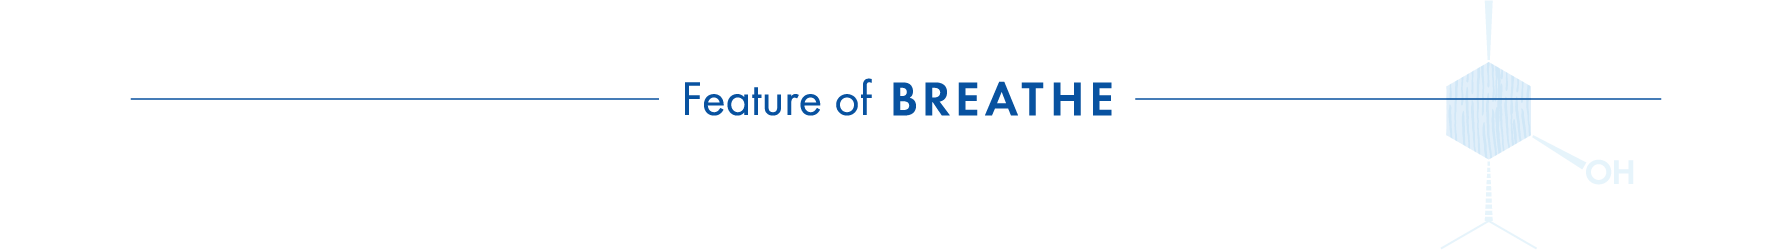 feature of breathe ブリーズシリーズの特徴